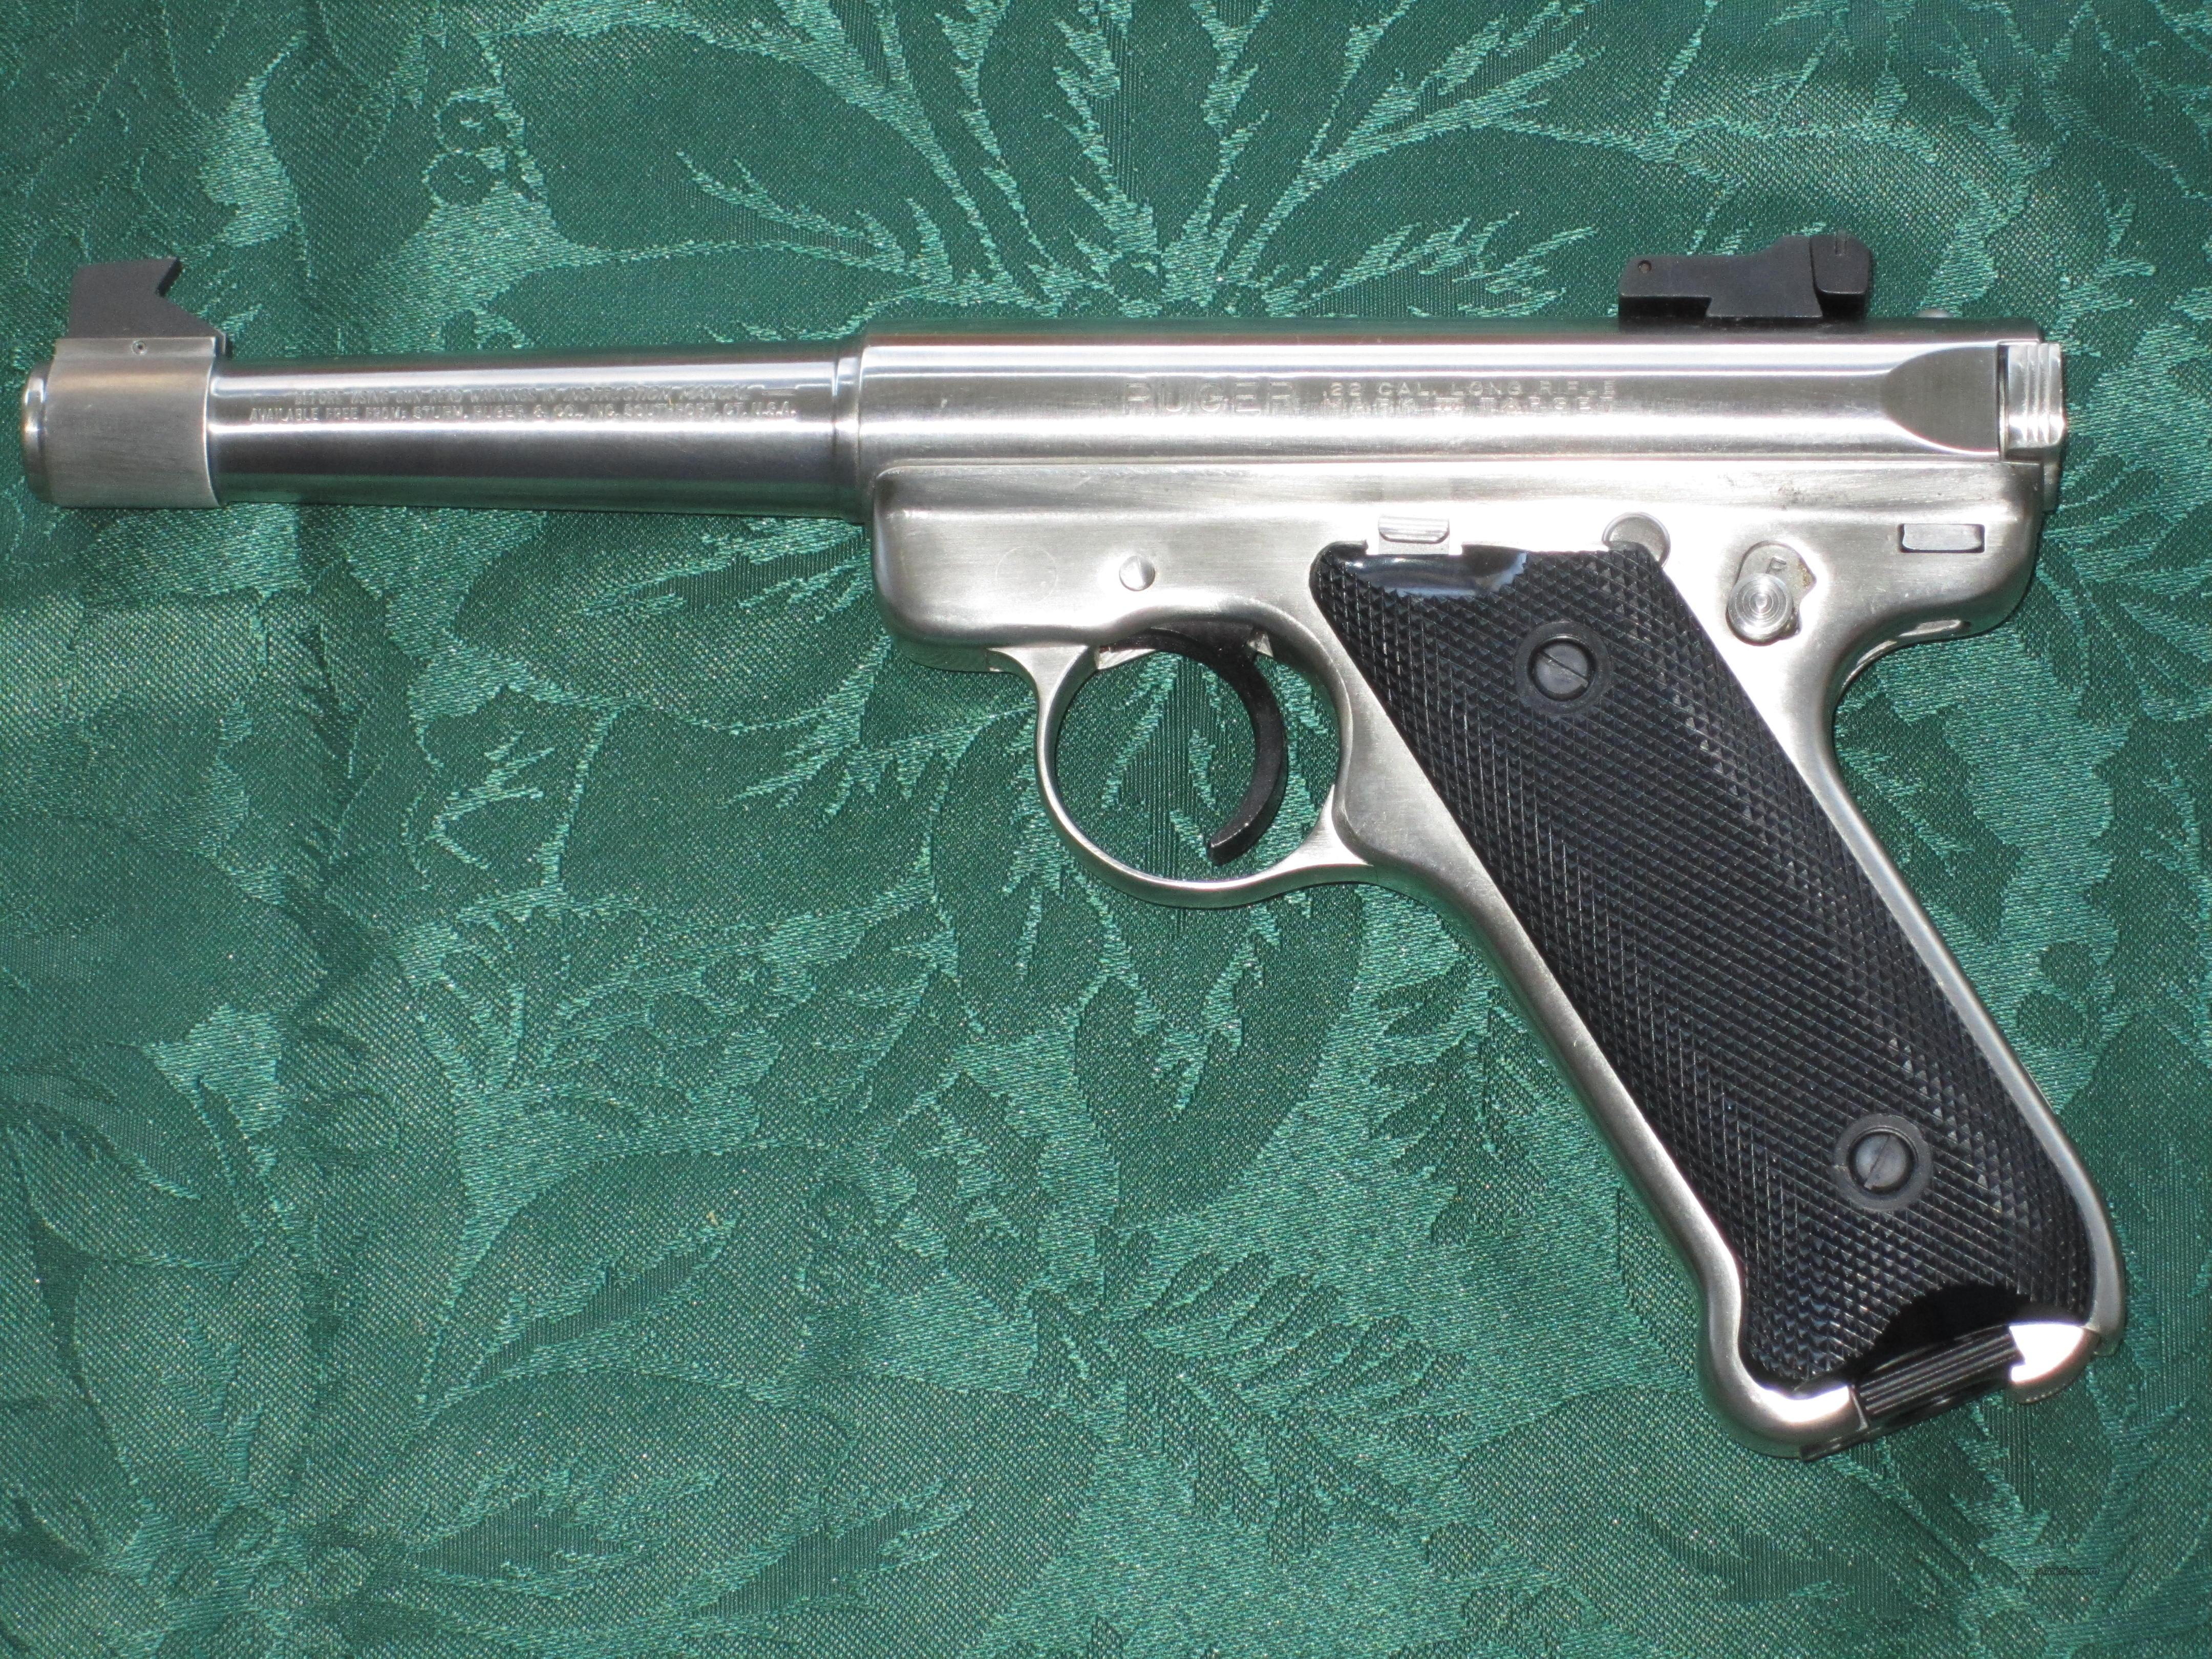 Ruger Mark Ii 22 Lr Stainless Steel 5 1 4 Bb For Sale